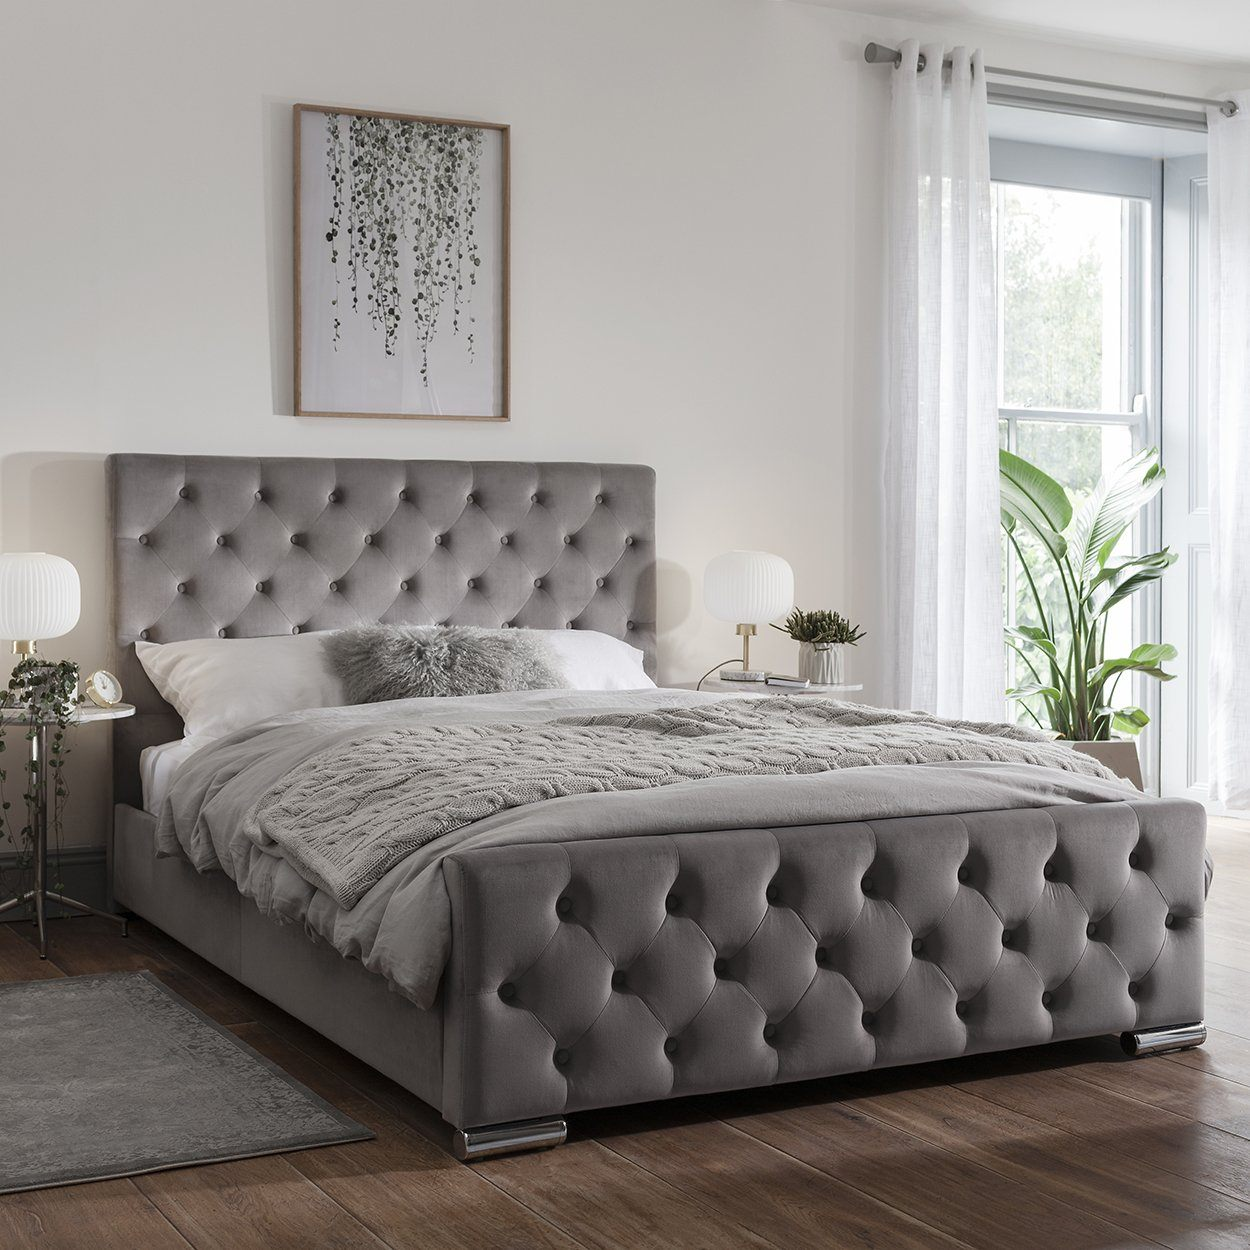 Picture of: Grey Fabric King Size Bed Frame Laura James